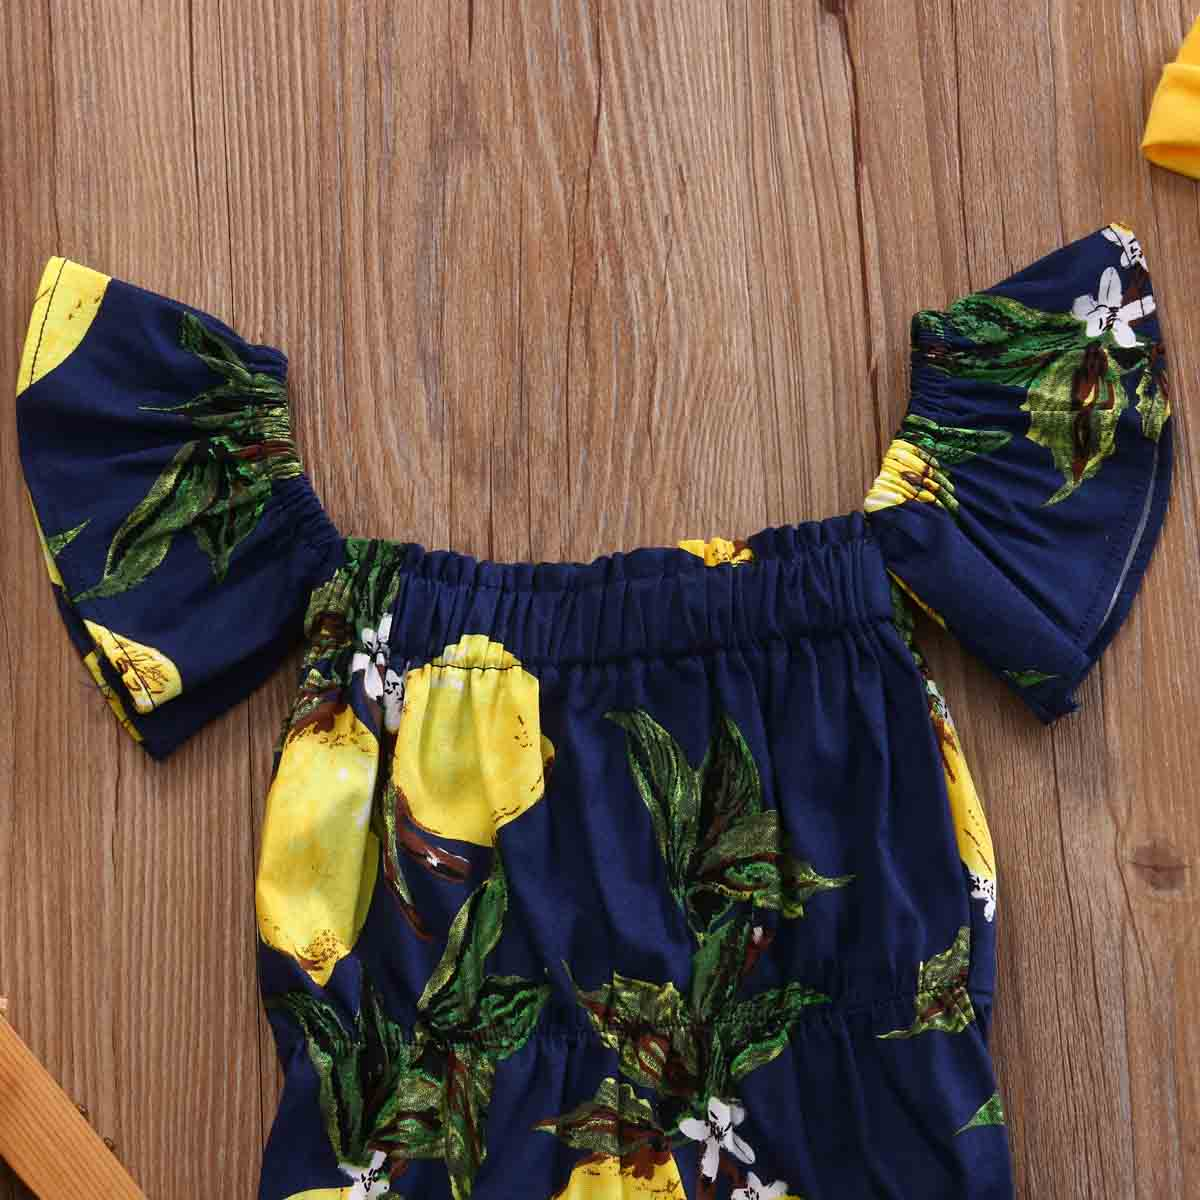 Cute-Newborn-Baby-Girl-Clothes-2017-Summer-Off-shoulder-Pear-Printed-Toddler-Kids-Jumpsuit-Headband-Outfits-Sunsuit-Clothing-4